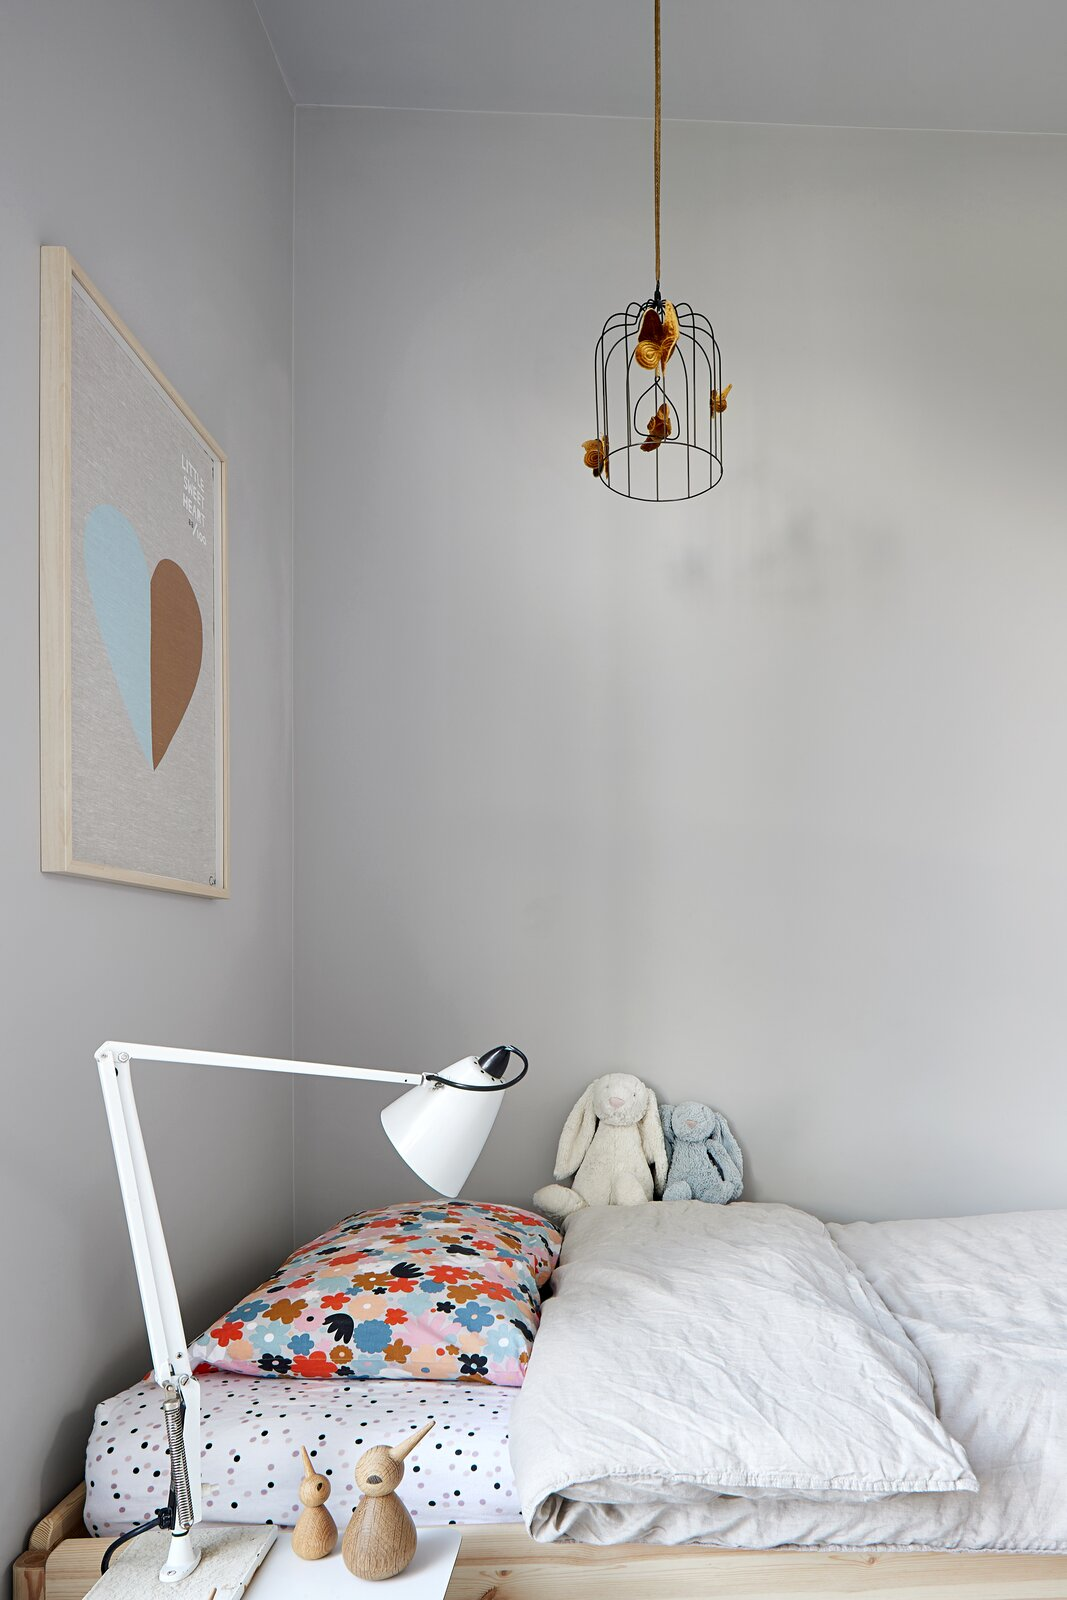 Kids Room, Girl Gender, Lamps, Toddler Age, Neutral Gender, Bed, and Bedroom Room Type  Photo 17 of 20 in A Concrete House Is Softened by an Airy Internal Courtyard, Complete With an Olive Grove from Ruxton Rise Residence